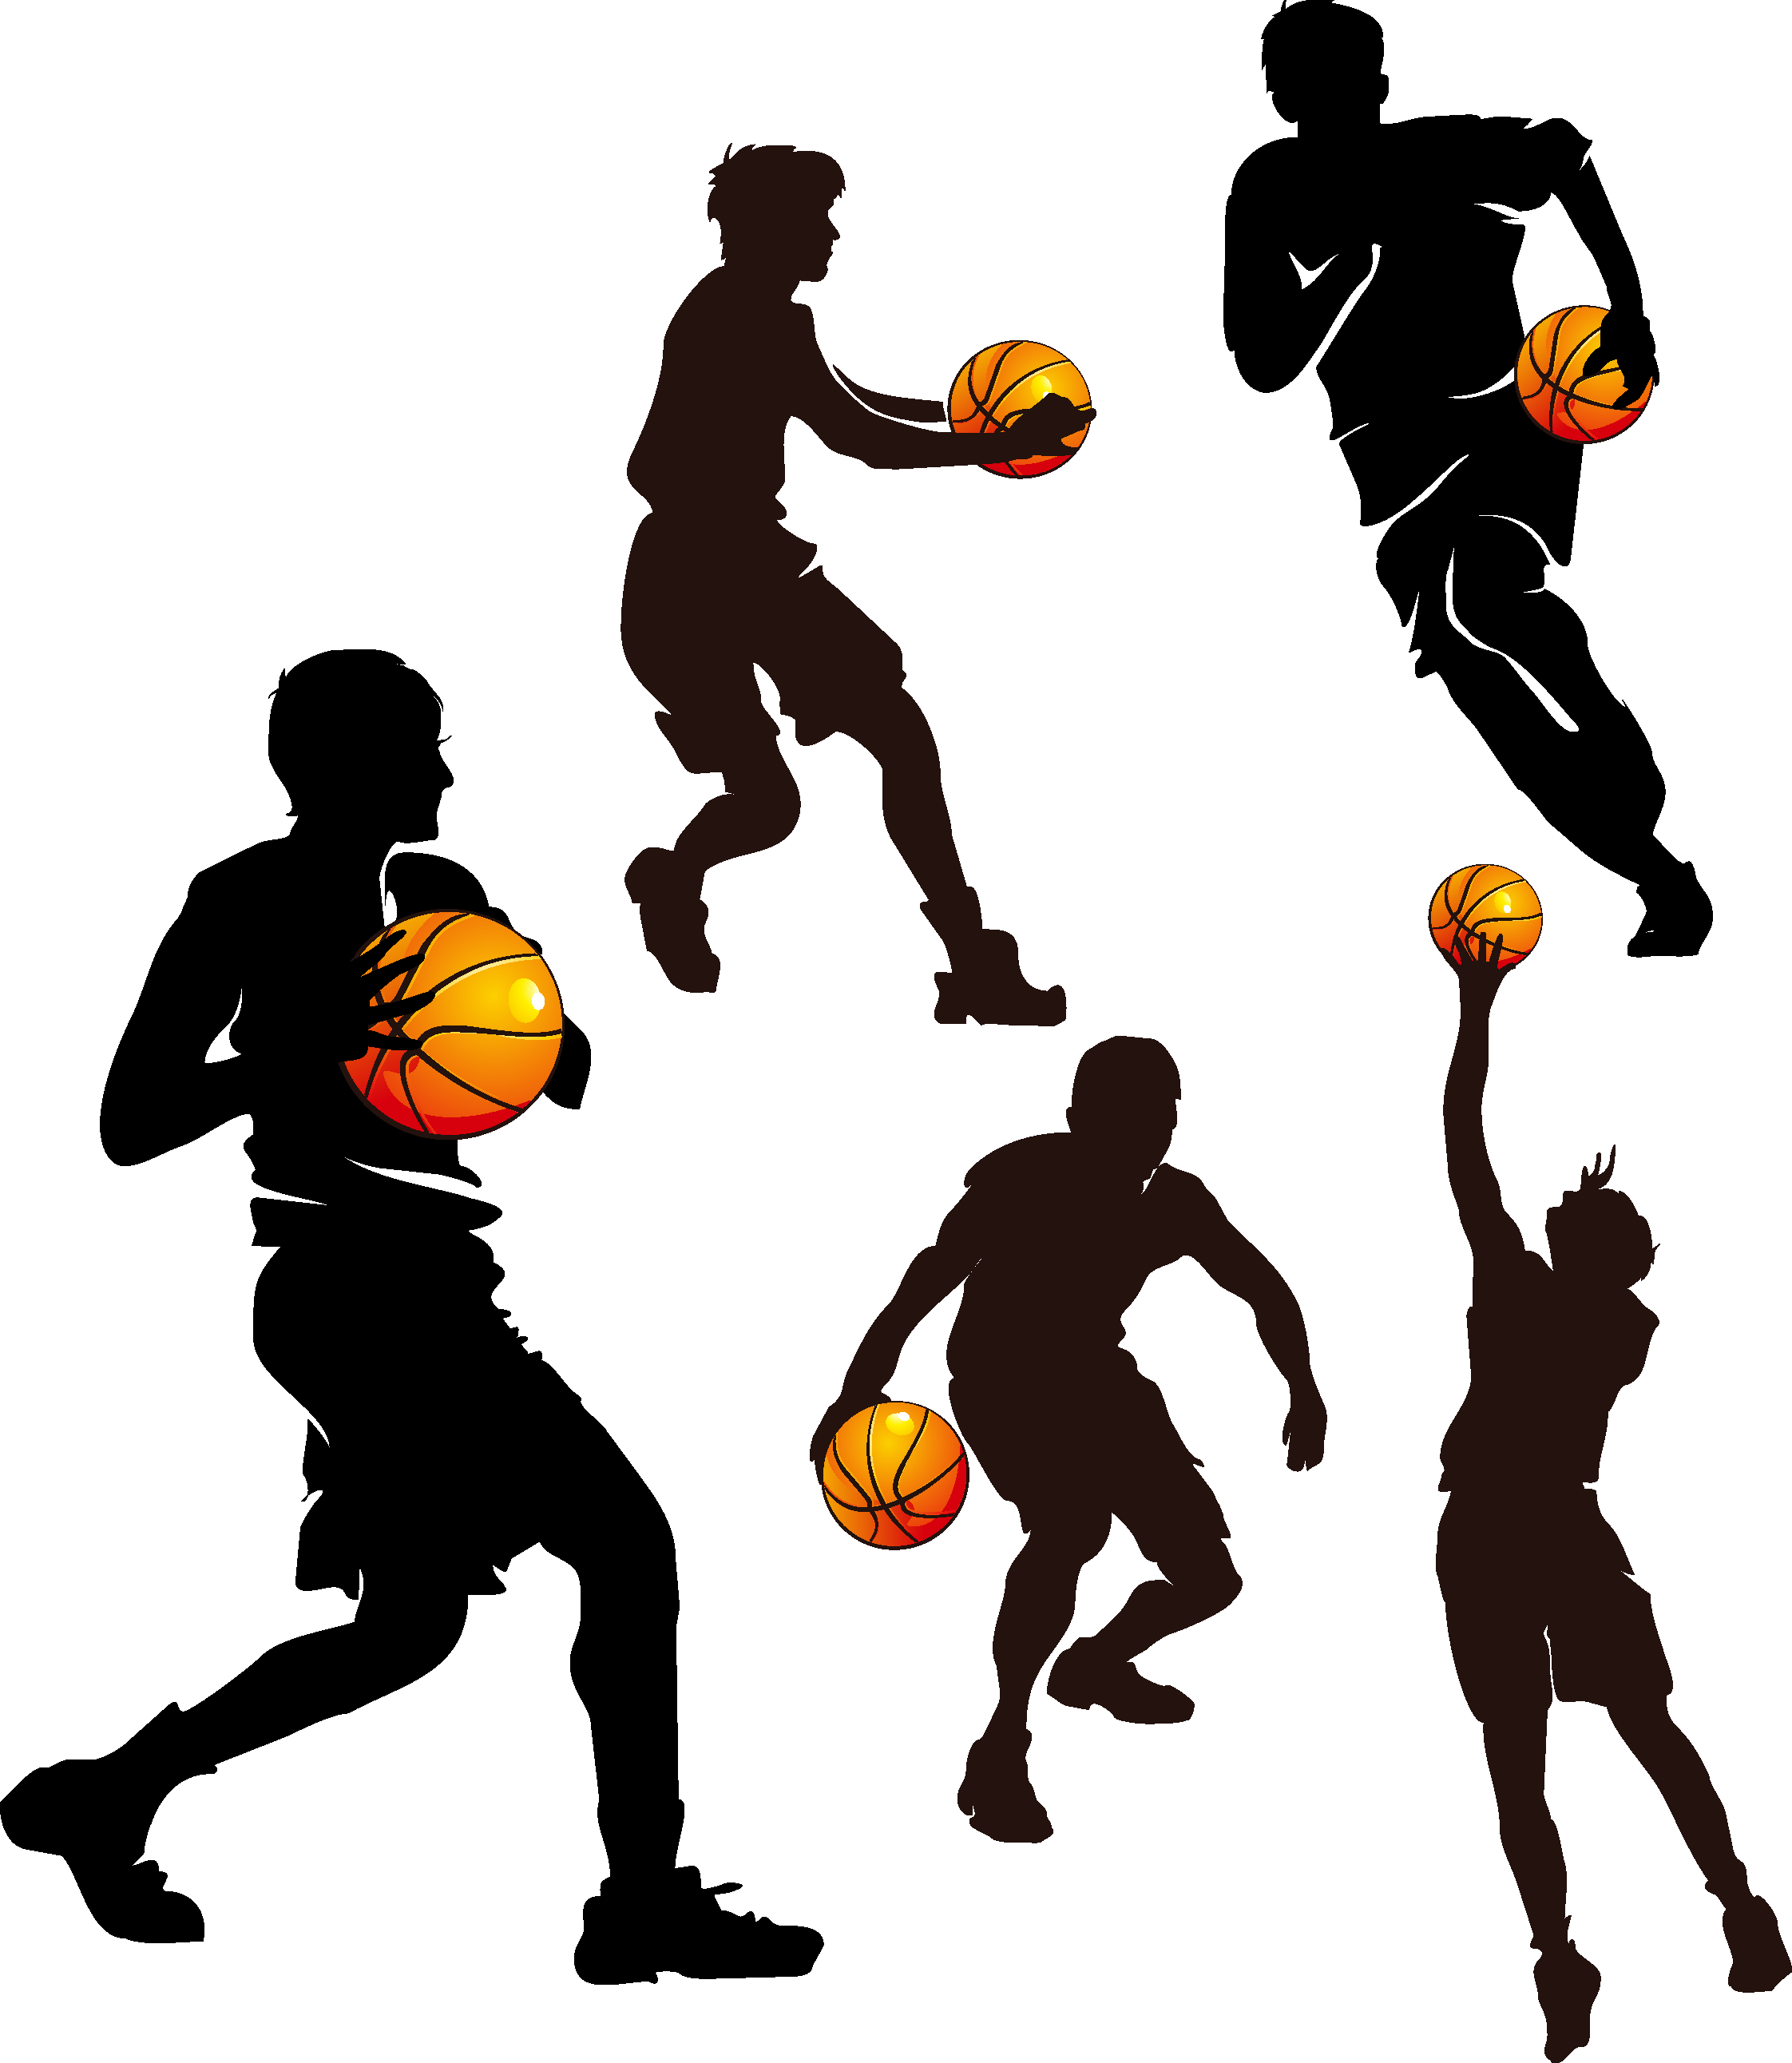 Person shooting a basketball clipart clip art transparent download Basketball Sport Clip art - Basketball Silhouette 2244*2583 ... clip art transparent download